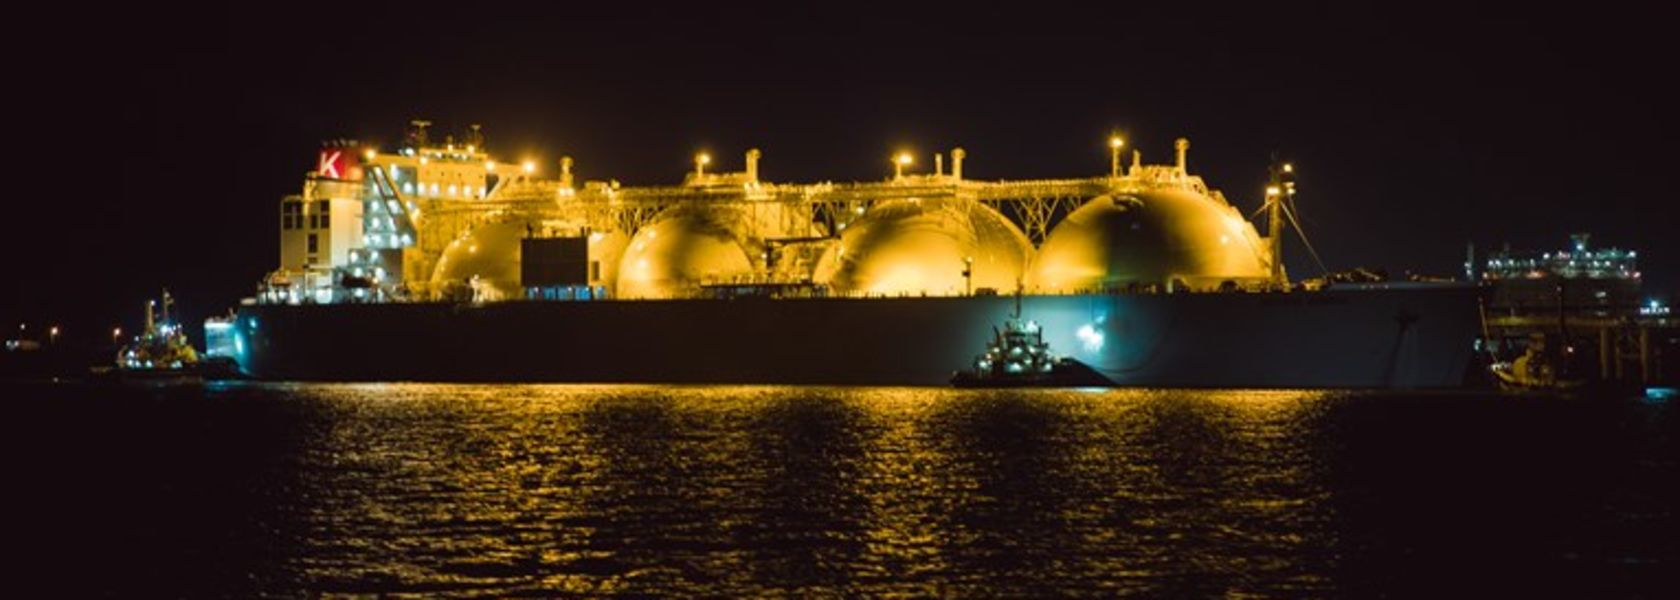 Inpex joins LNG exporters' club